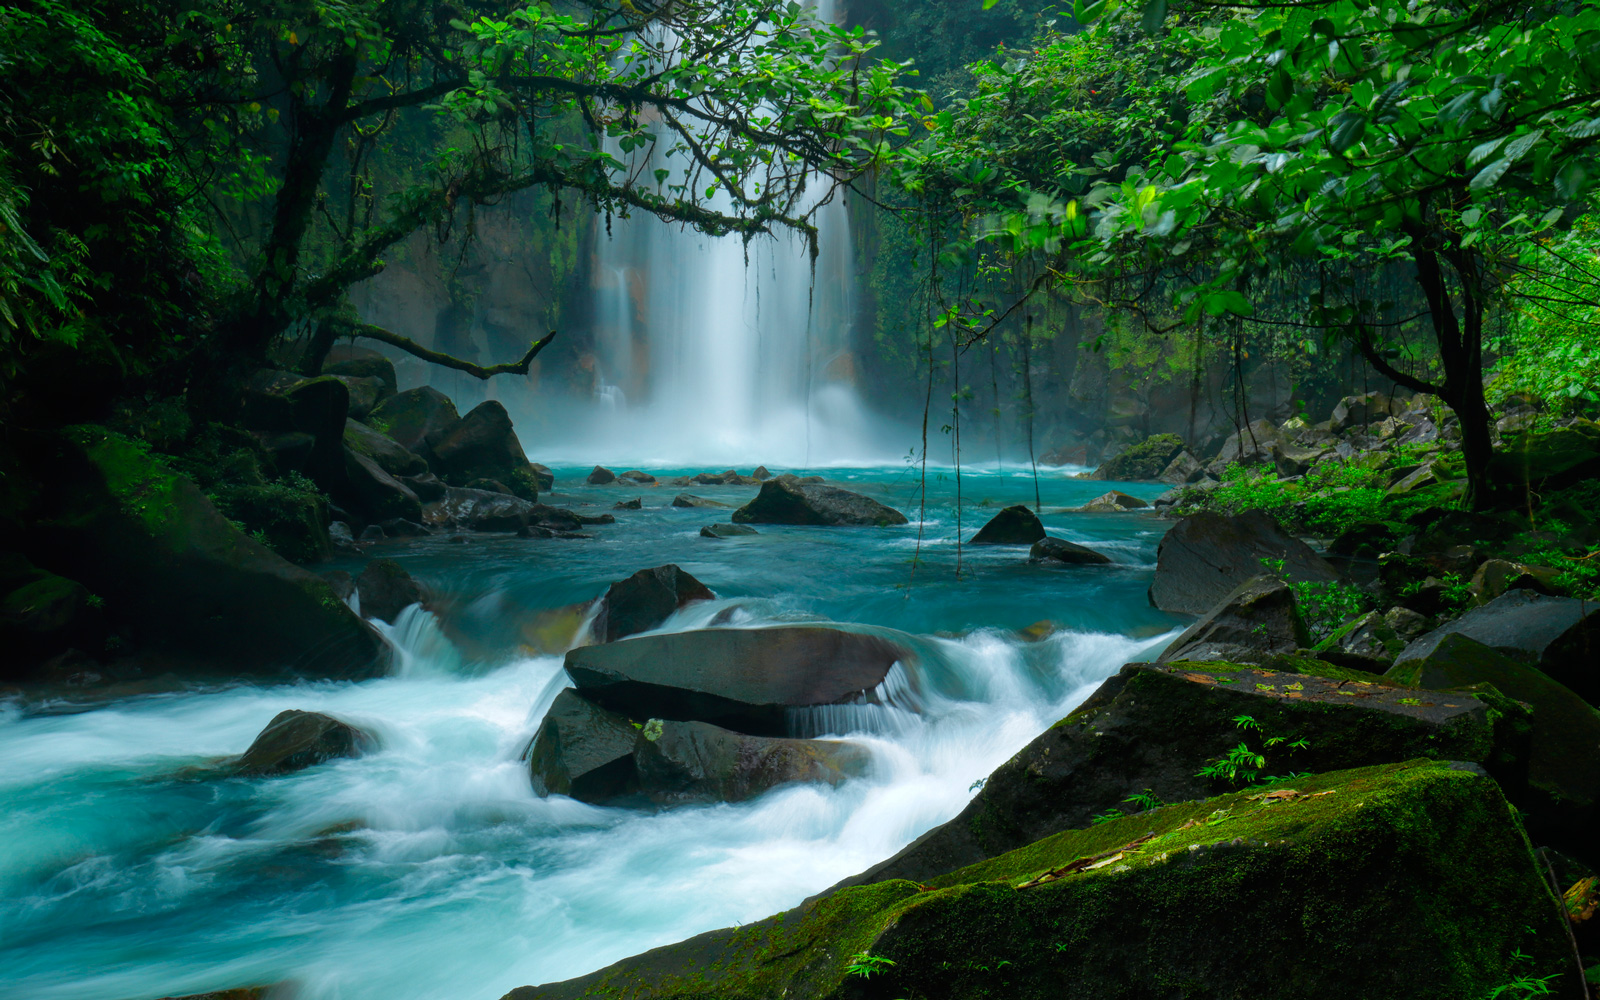 Blue Or Green This Waterfall Will Make You Want To Travel To Costa Rica